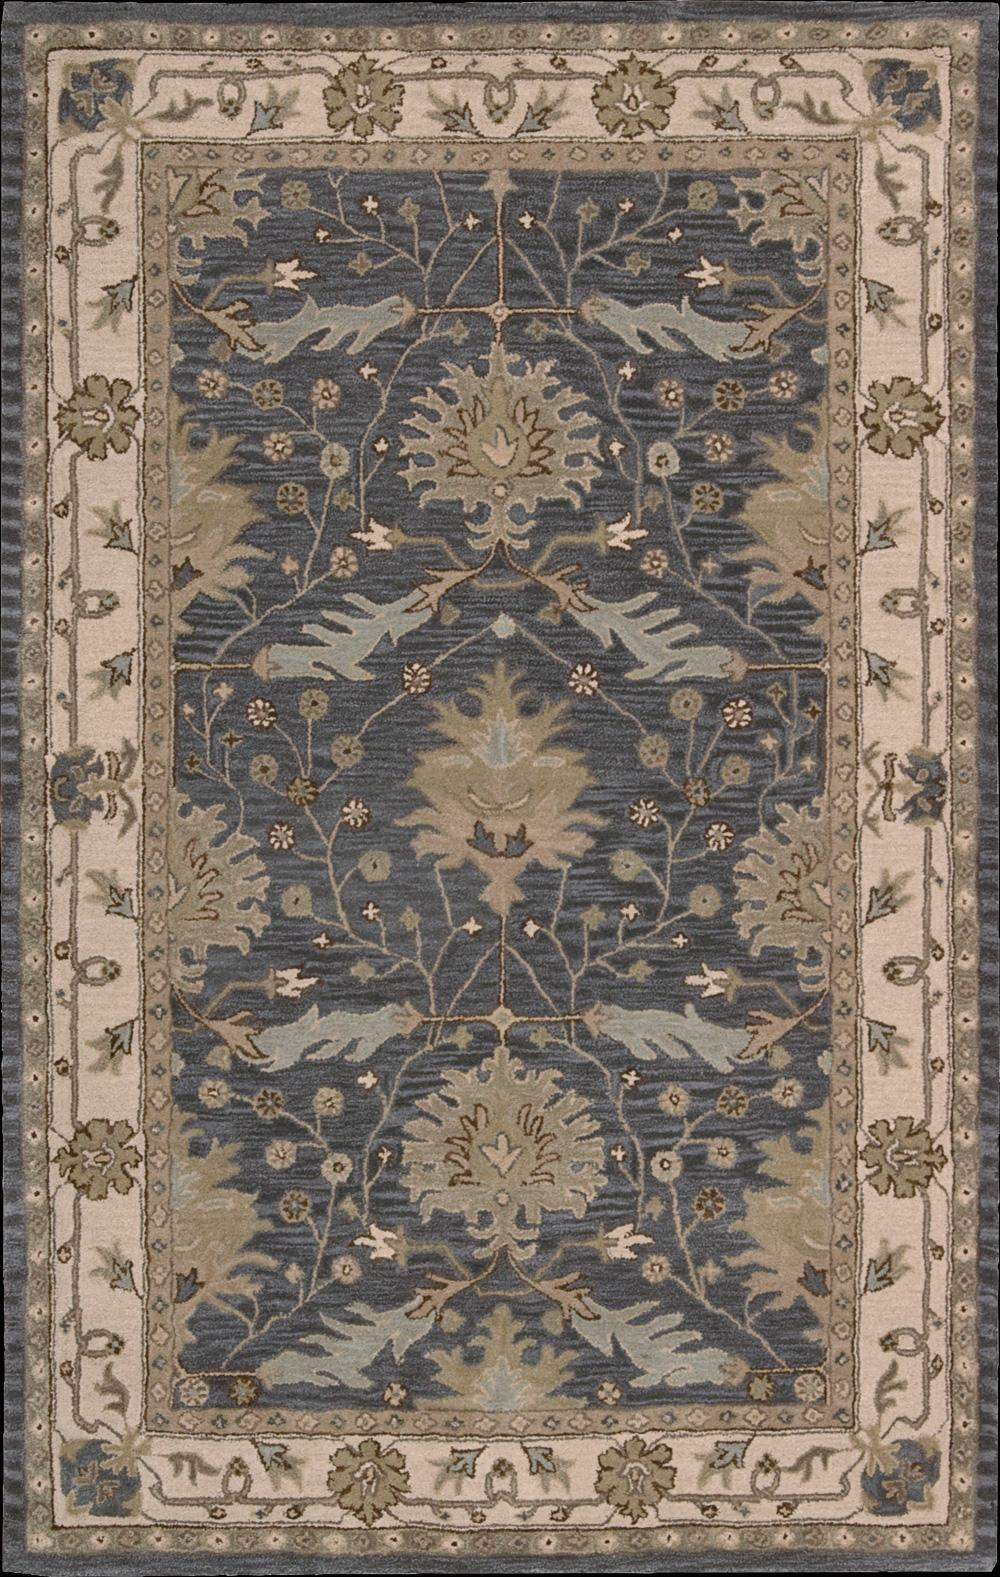 Nourison India House Area Rug 5' x 8' - Item Number: 207